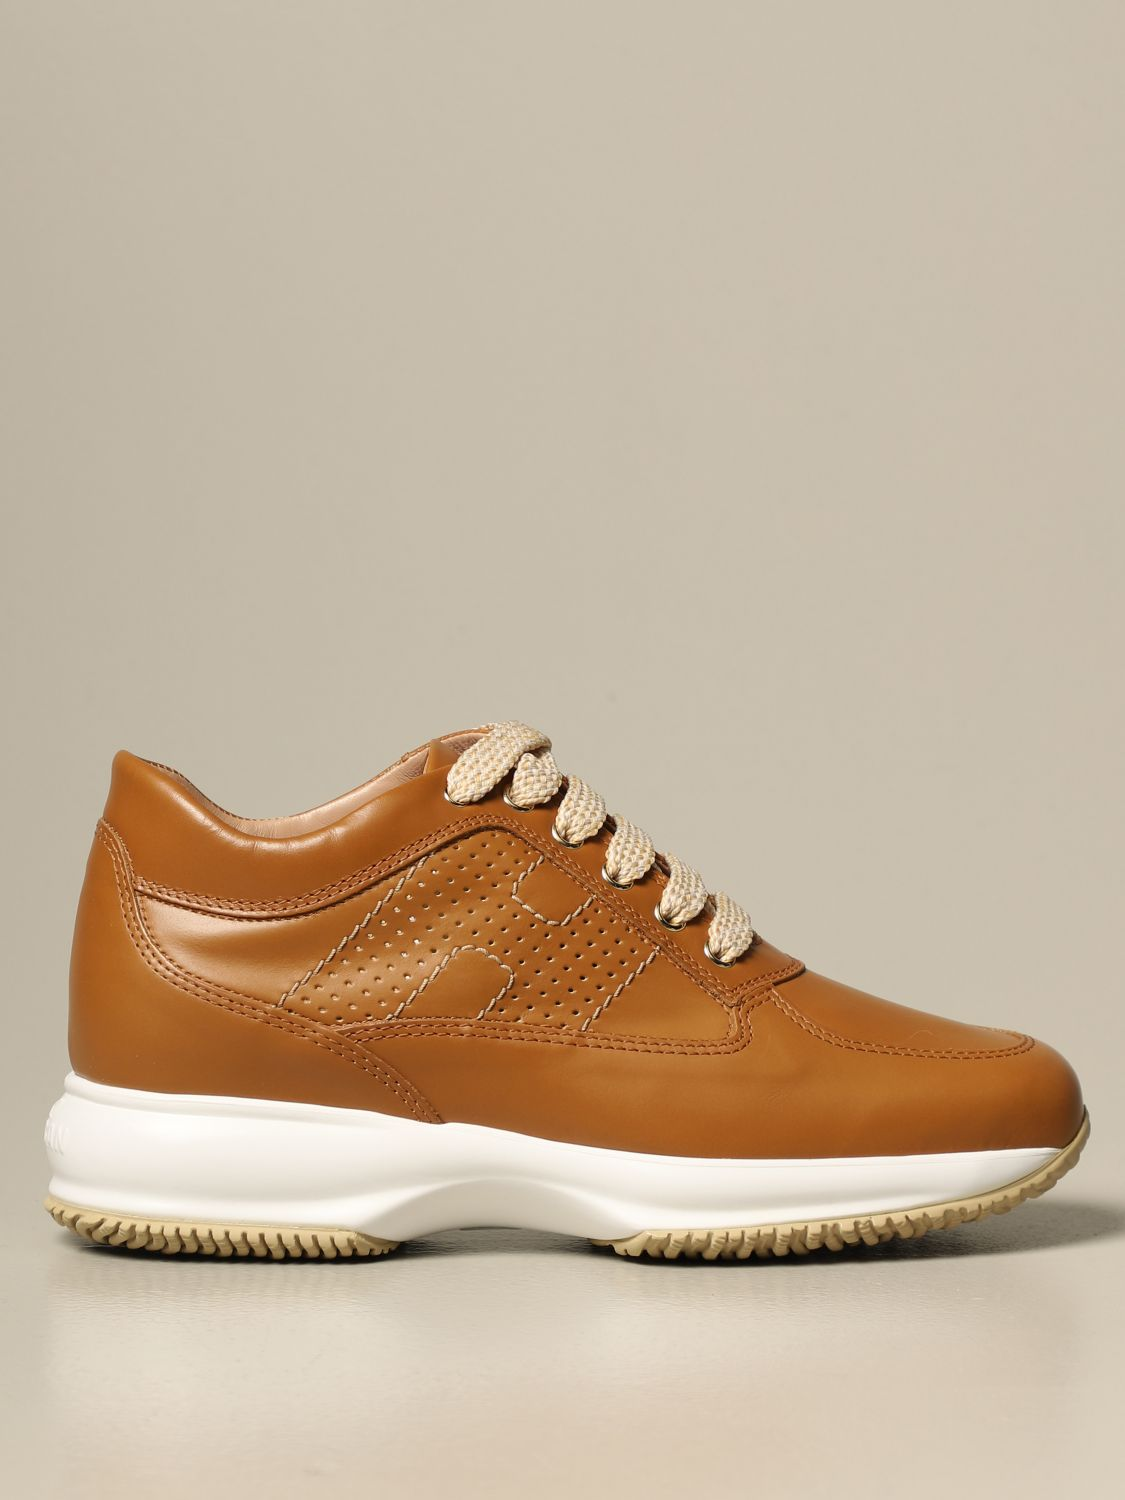 Interactive Hogan sneakers in pearled leather with perforated H